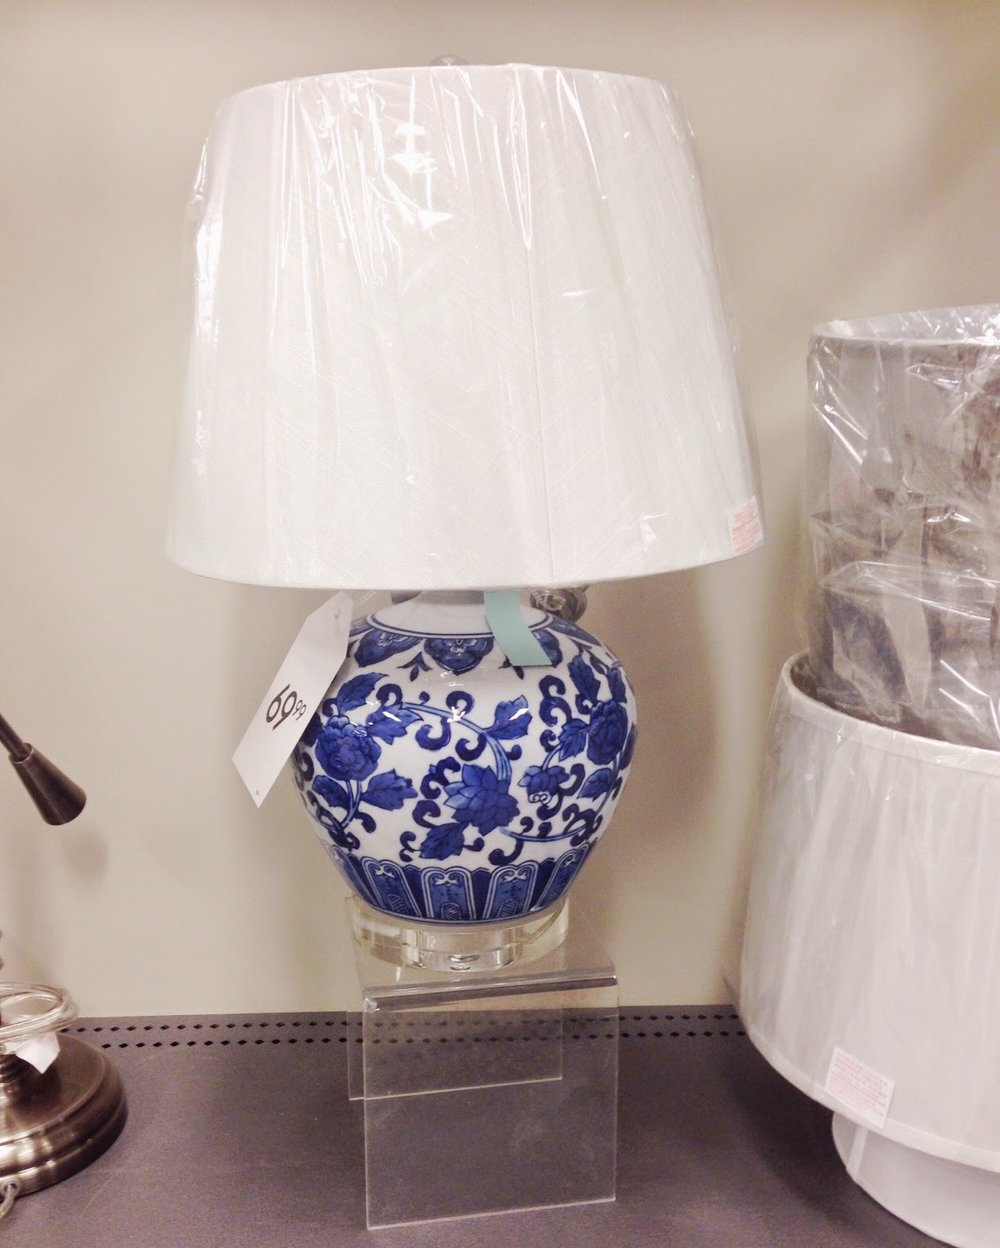 This Blue And White Ginger Jar Lamp Is A Dream! I Wish I Had A Place For  It! Sadly I Donu0027t, So Can Someone Please Buy It So I Can Live Vicariously  ...